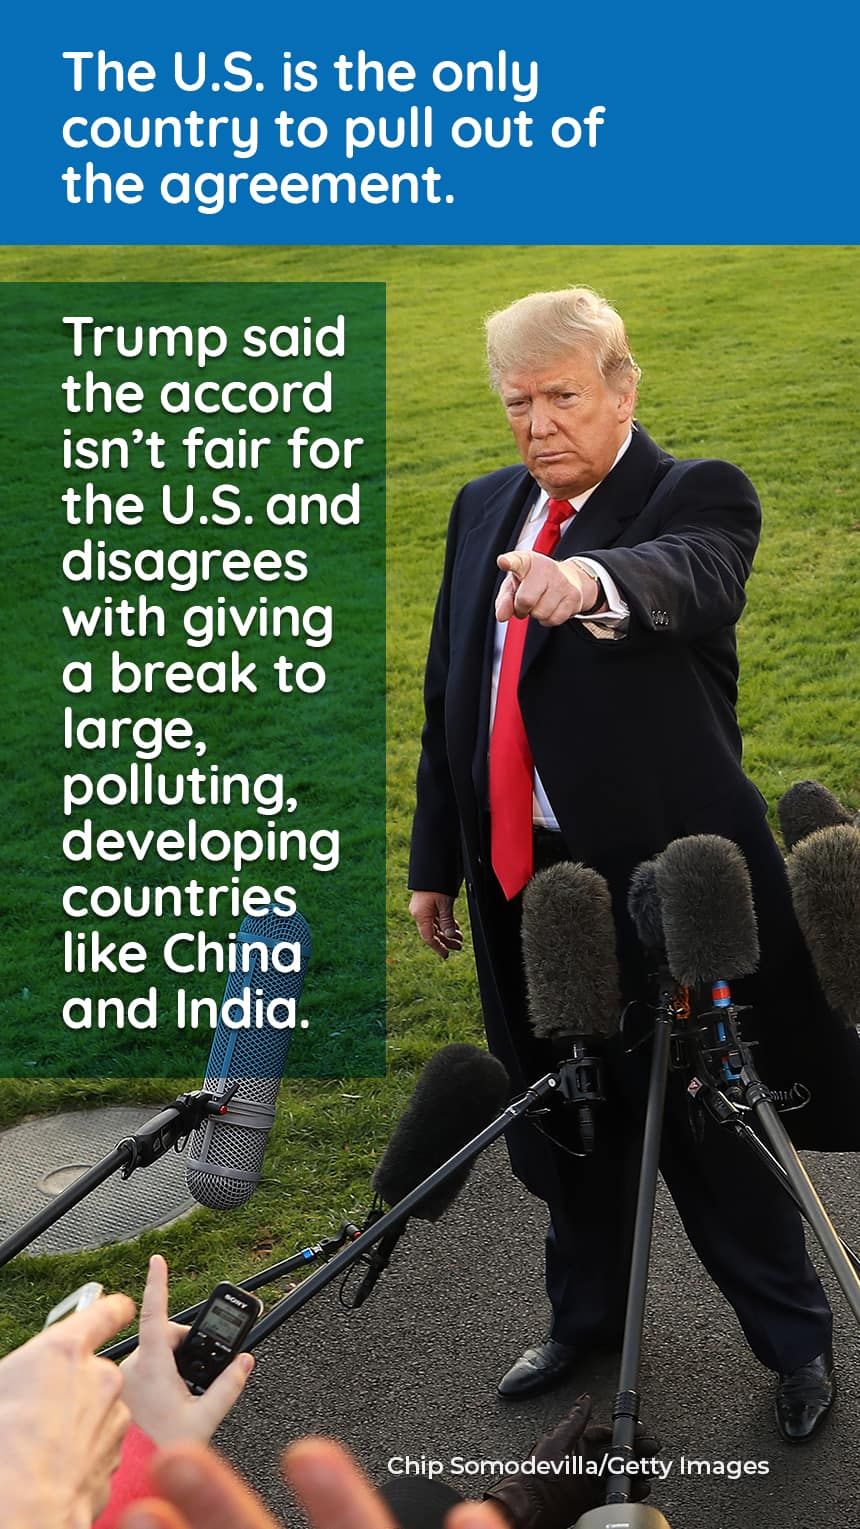 An image of Donald Trump pointing at a scrum of reporters and reporters' hands up in the air with TEXT: The U.S. is the only country to pull out of the agreement. Trump said the accord isn't fair for the U.S and disagrees with giving a break to large, polluting, developing countries like China and India.